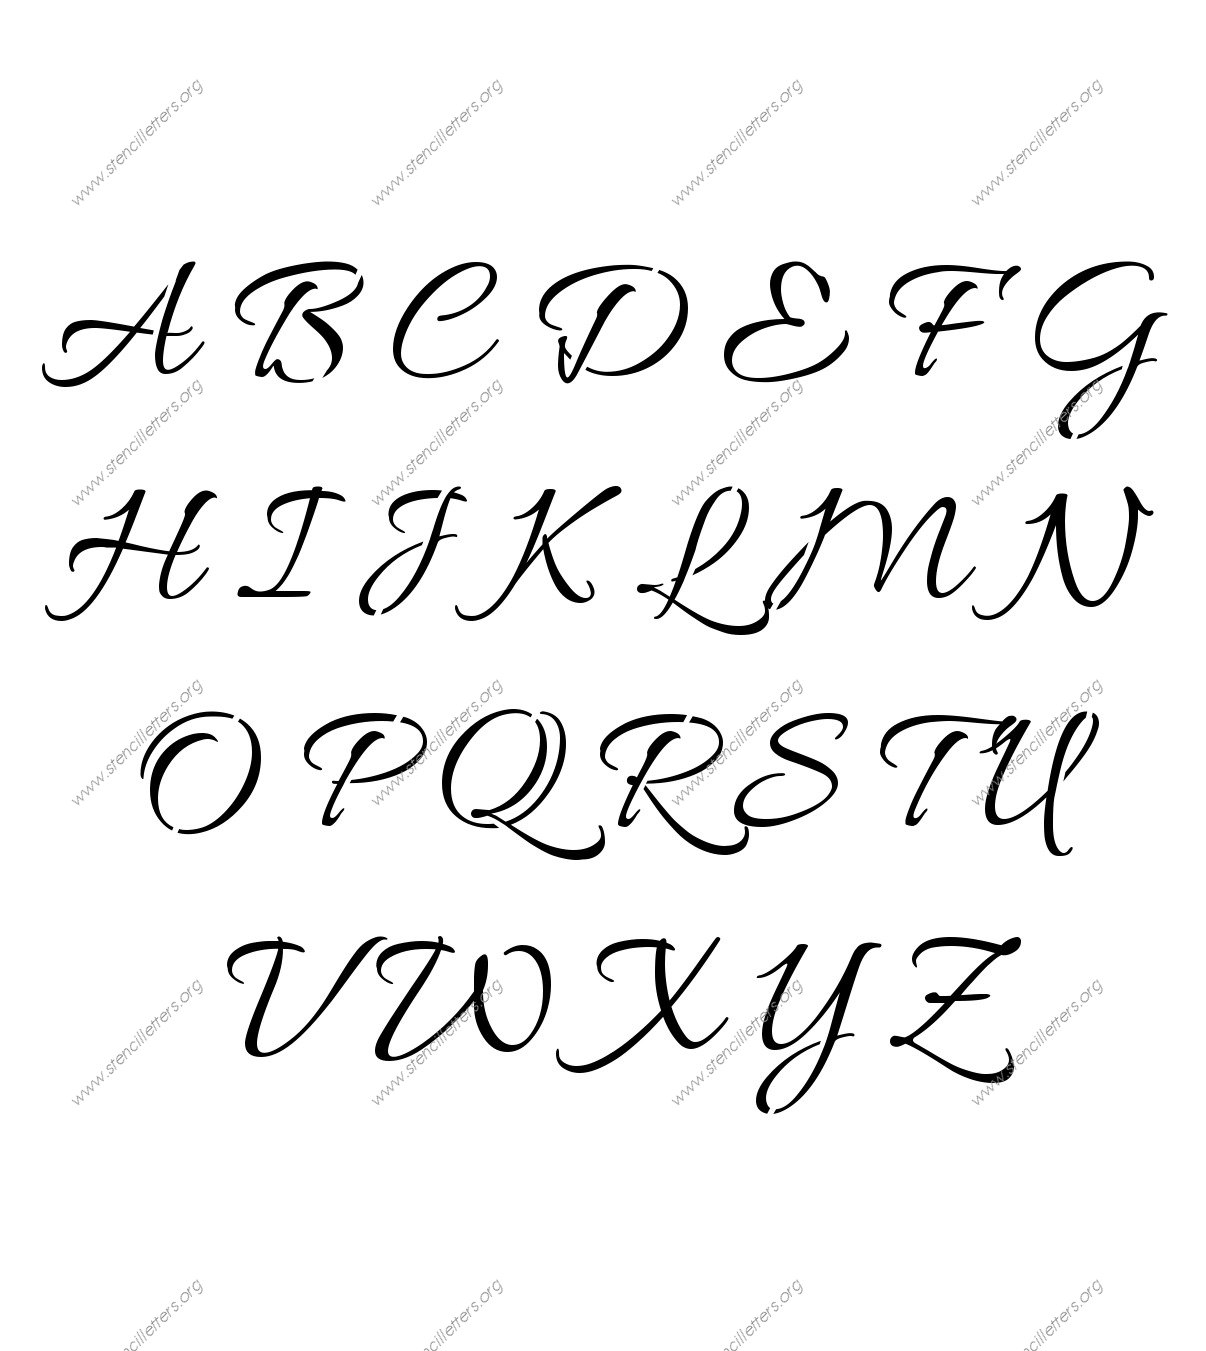 Worksheet Letter Cursive stylish cursive letter stencils numbers and custom made to order connected stencil set